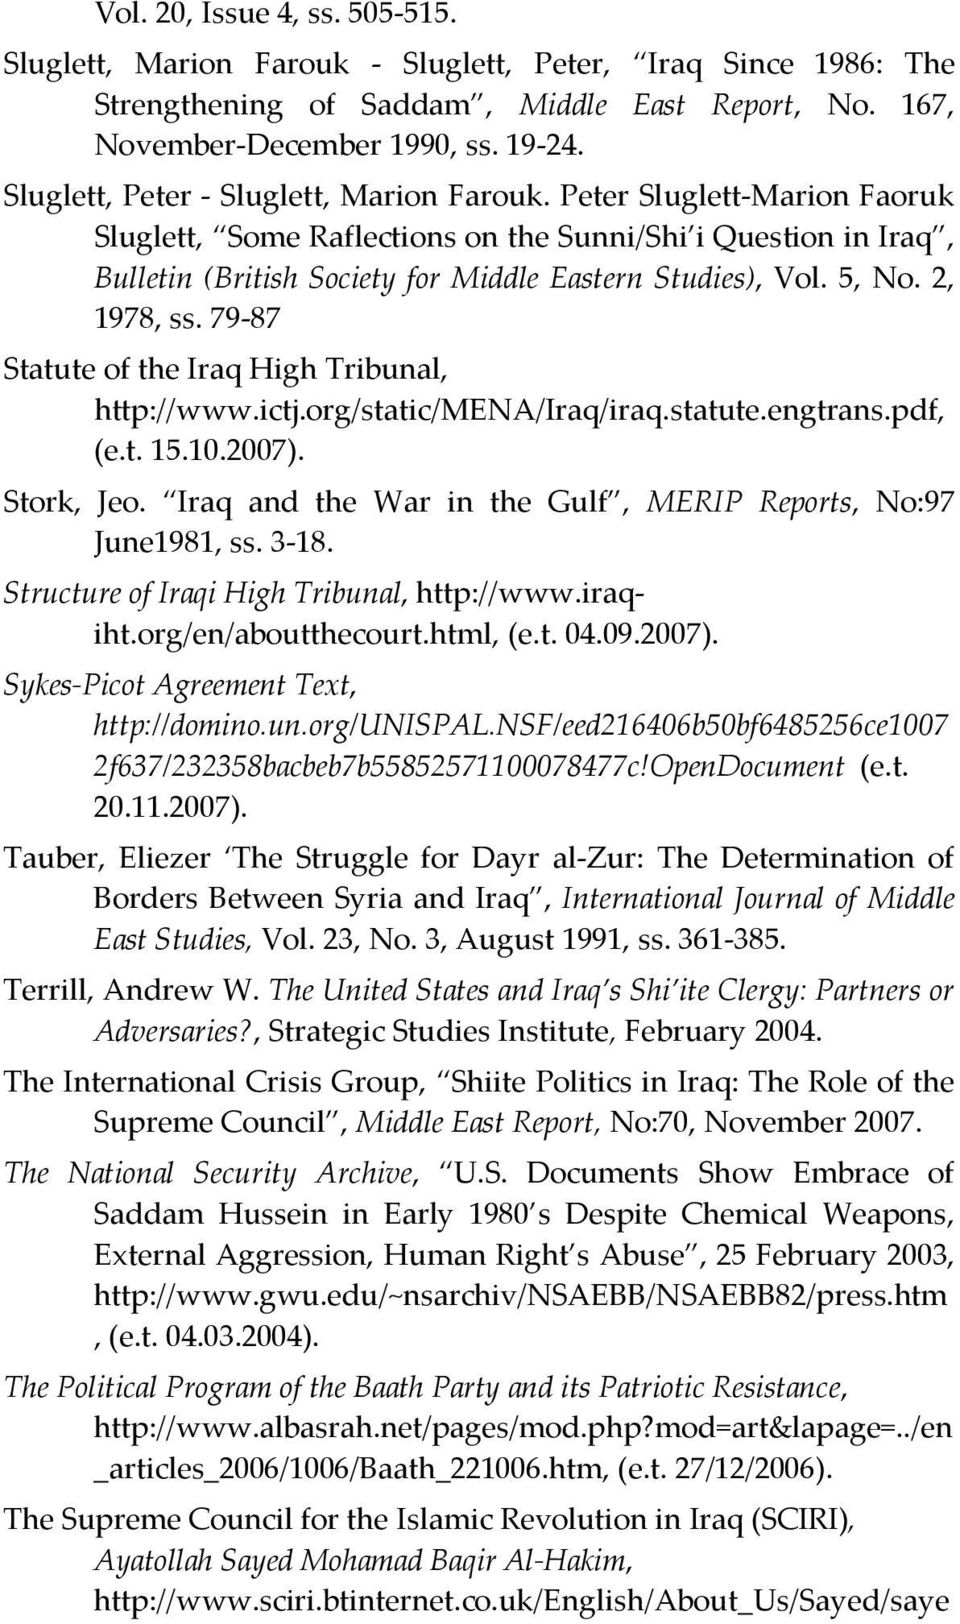 5, No. 2, 1978, ss. 79-87 Statute of the Iraq High Tribunal, http://www.ictj.org/static/mena/iraq/iraq.statute.engtrans.pdf, (e.t. 15.10.2007). Stork, Jeo.